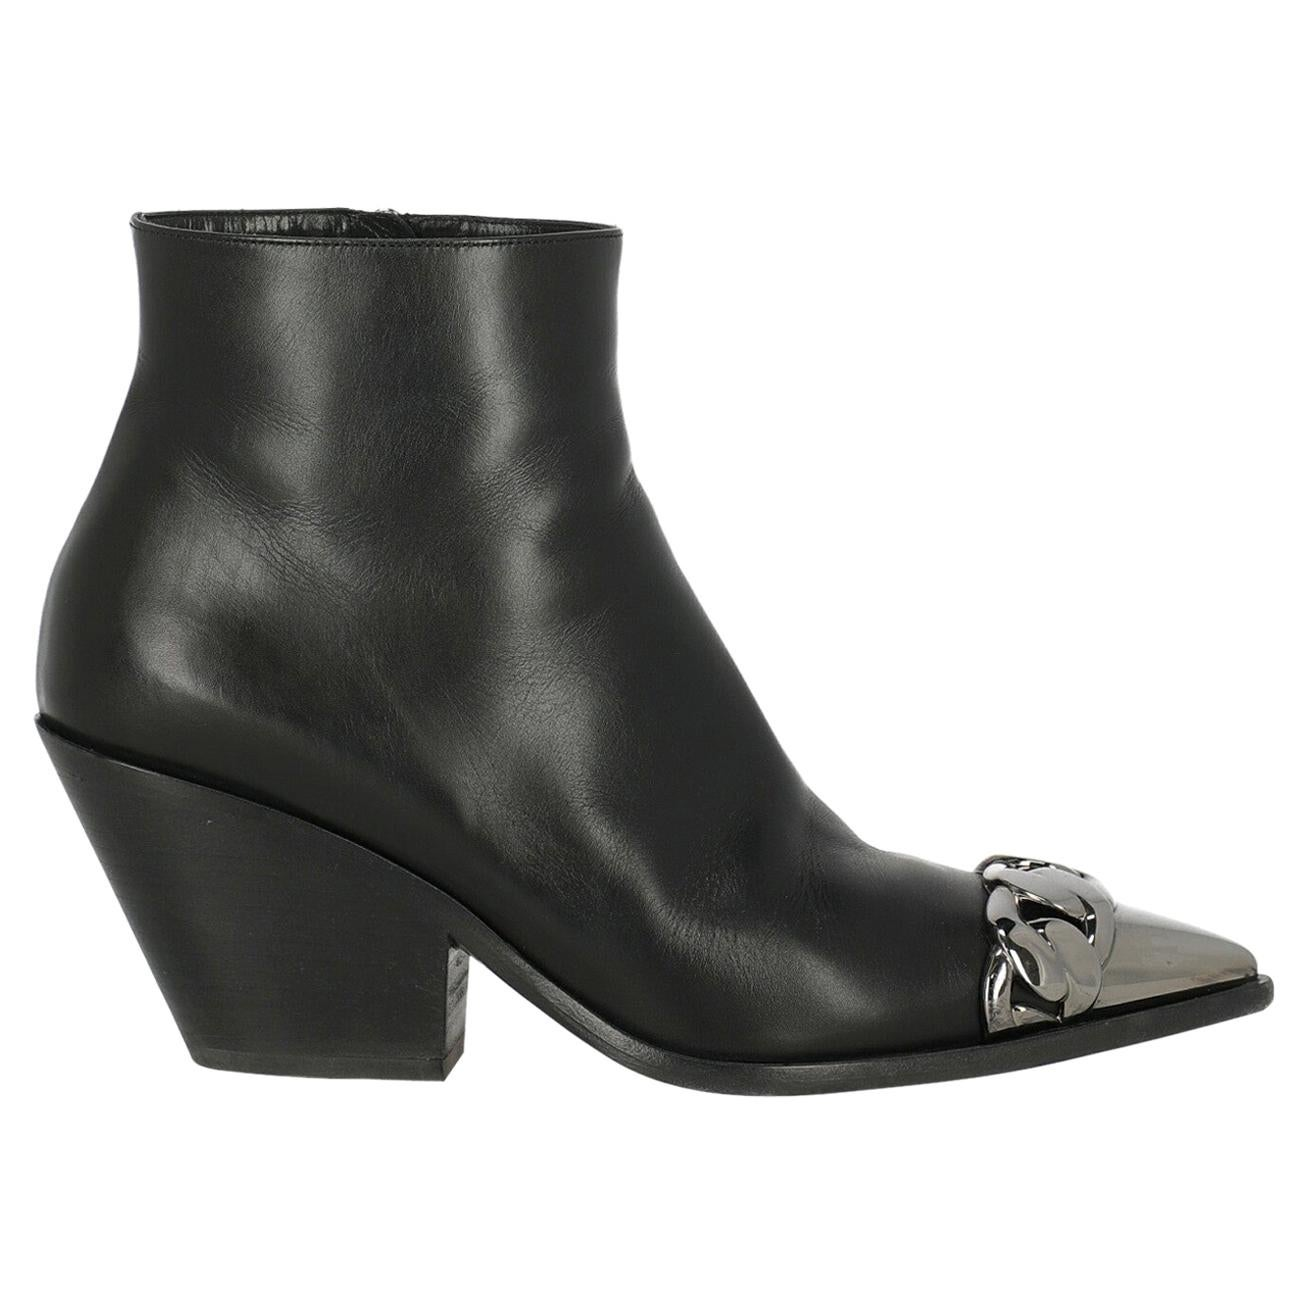 Casadei Woman Ankle boots Black Leather IT 38